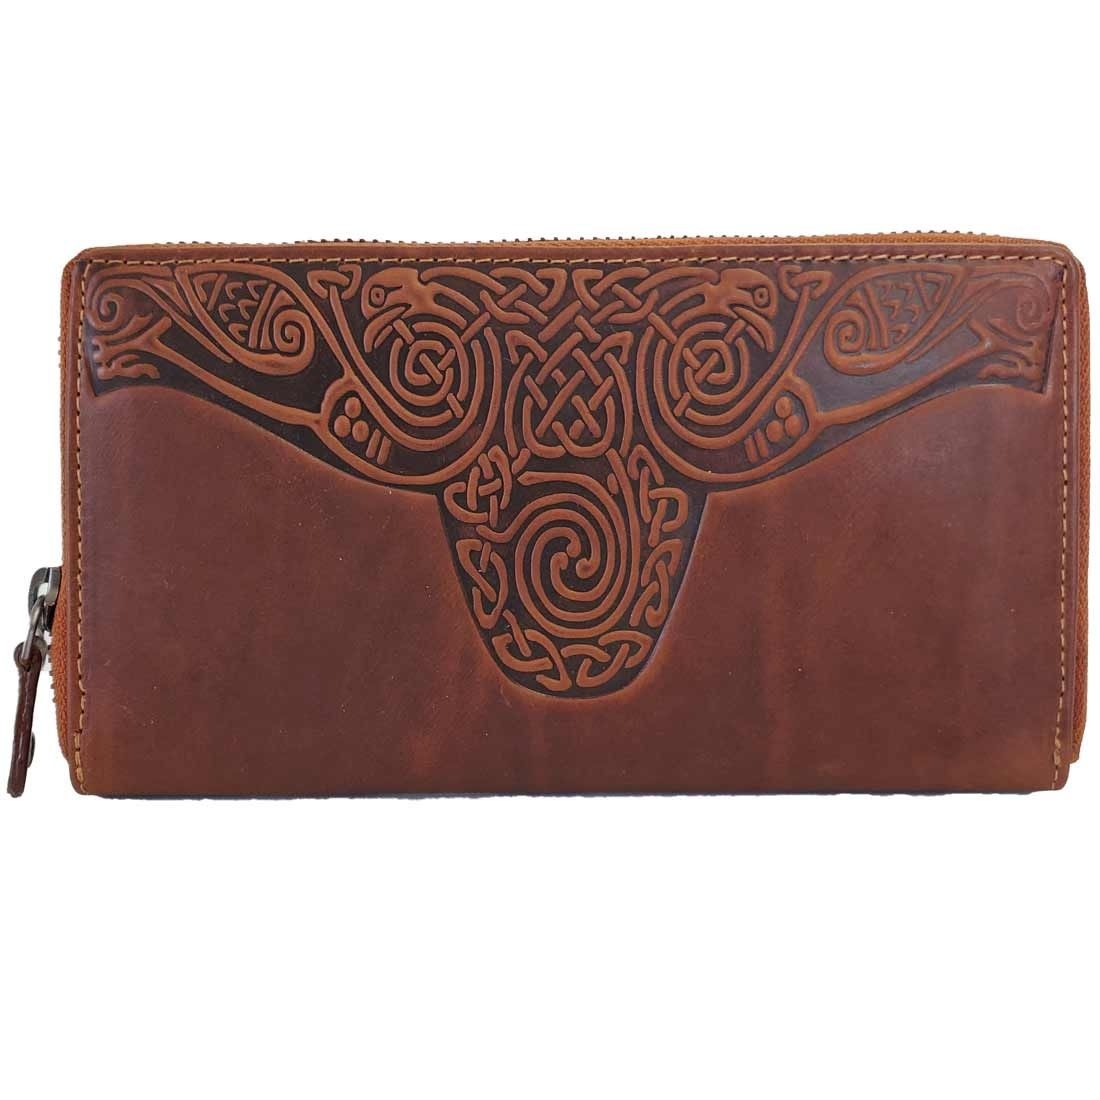 Wallet: Ladies Roisin Embossed Tan